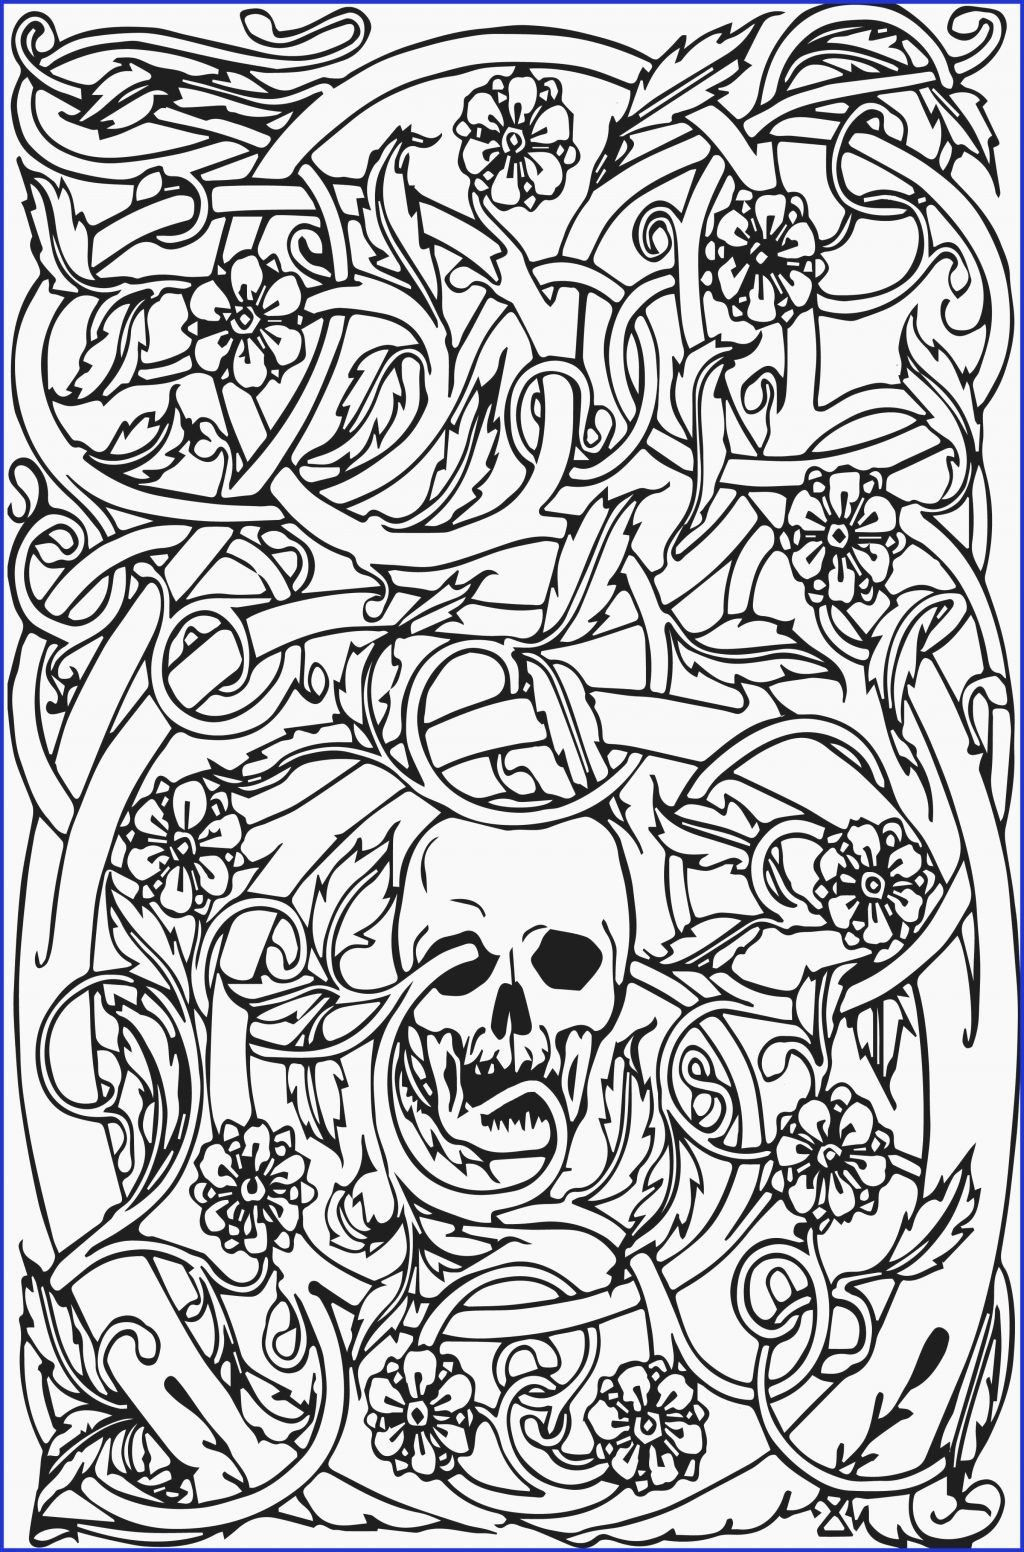 Art Therapy Coloring Book Pdf Skull Coloring Pages Halloween Coloring Book Cool Coloring Pages